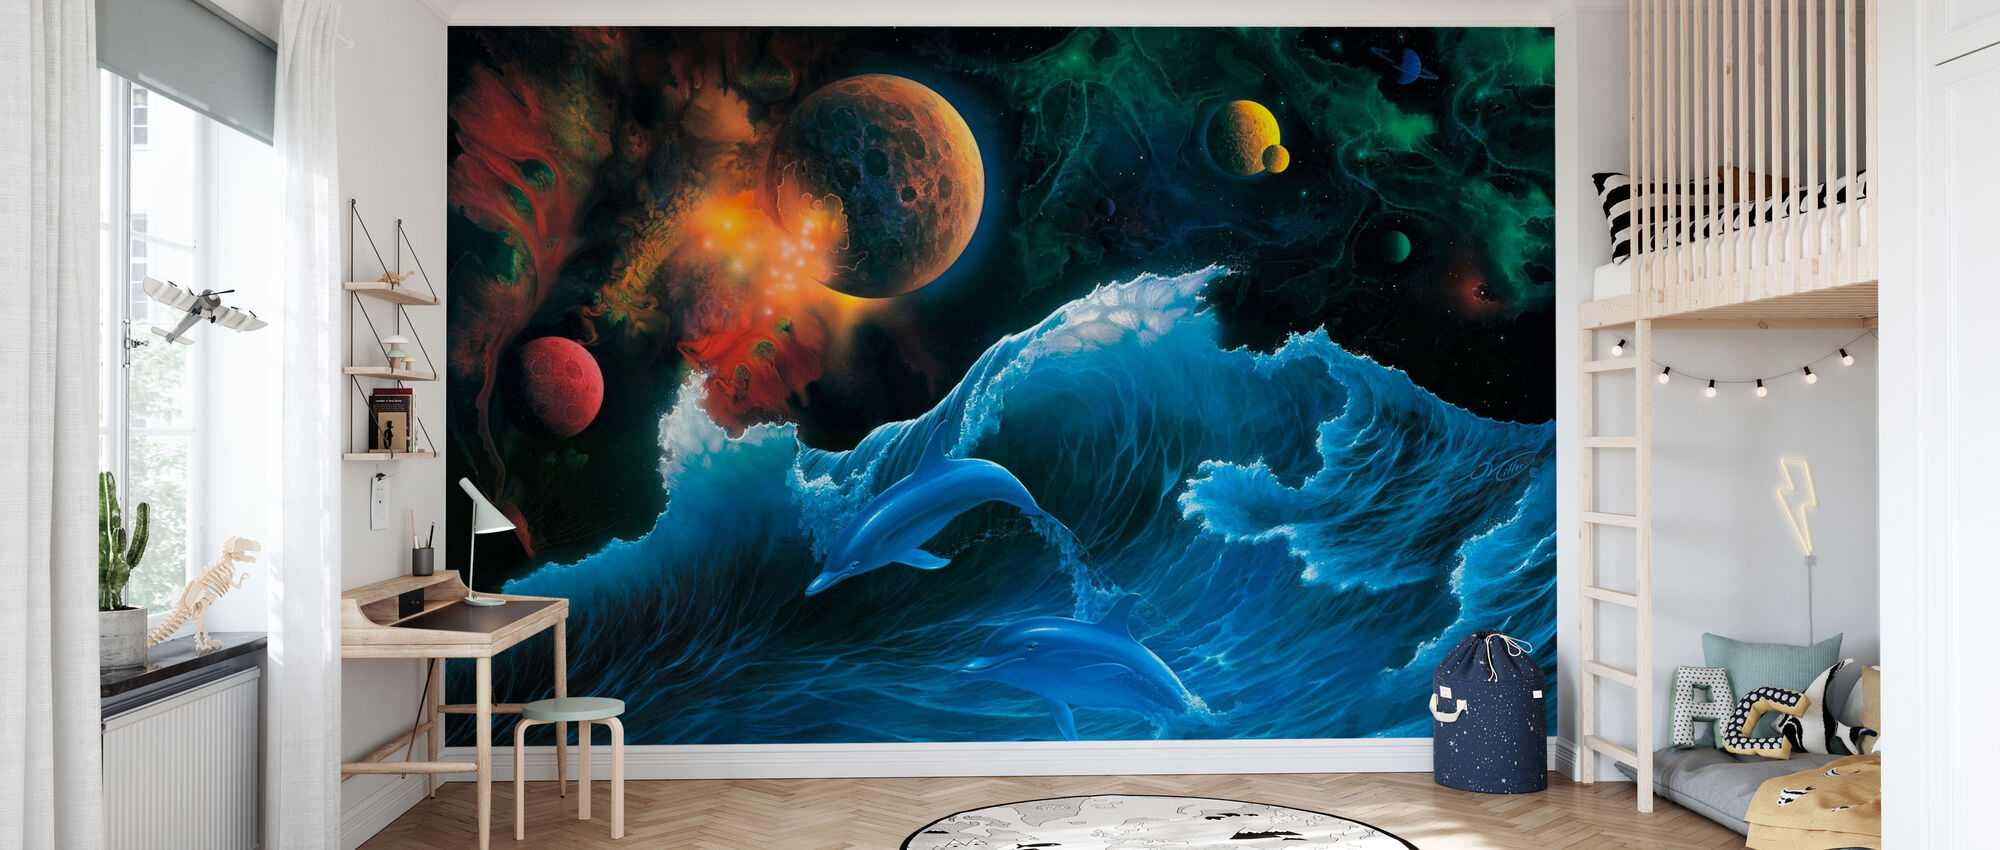 Voyager - Wallpaper - Kids Room